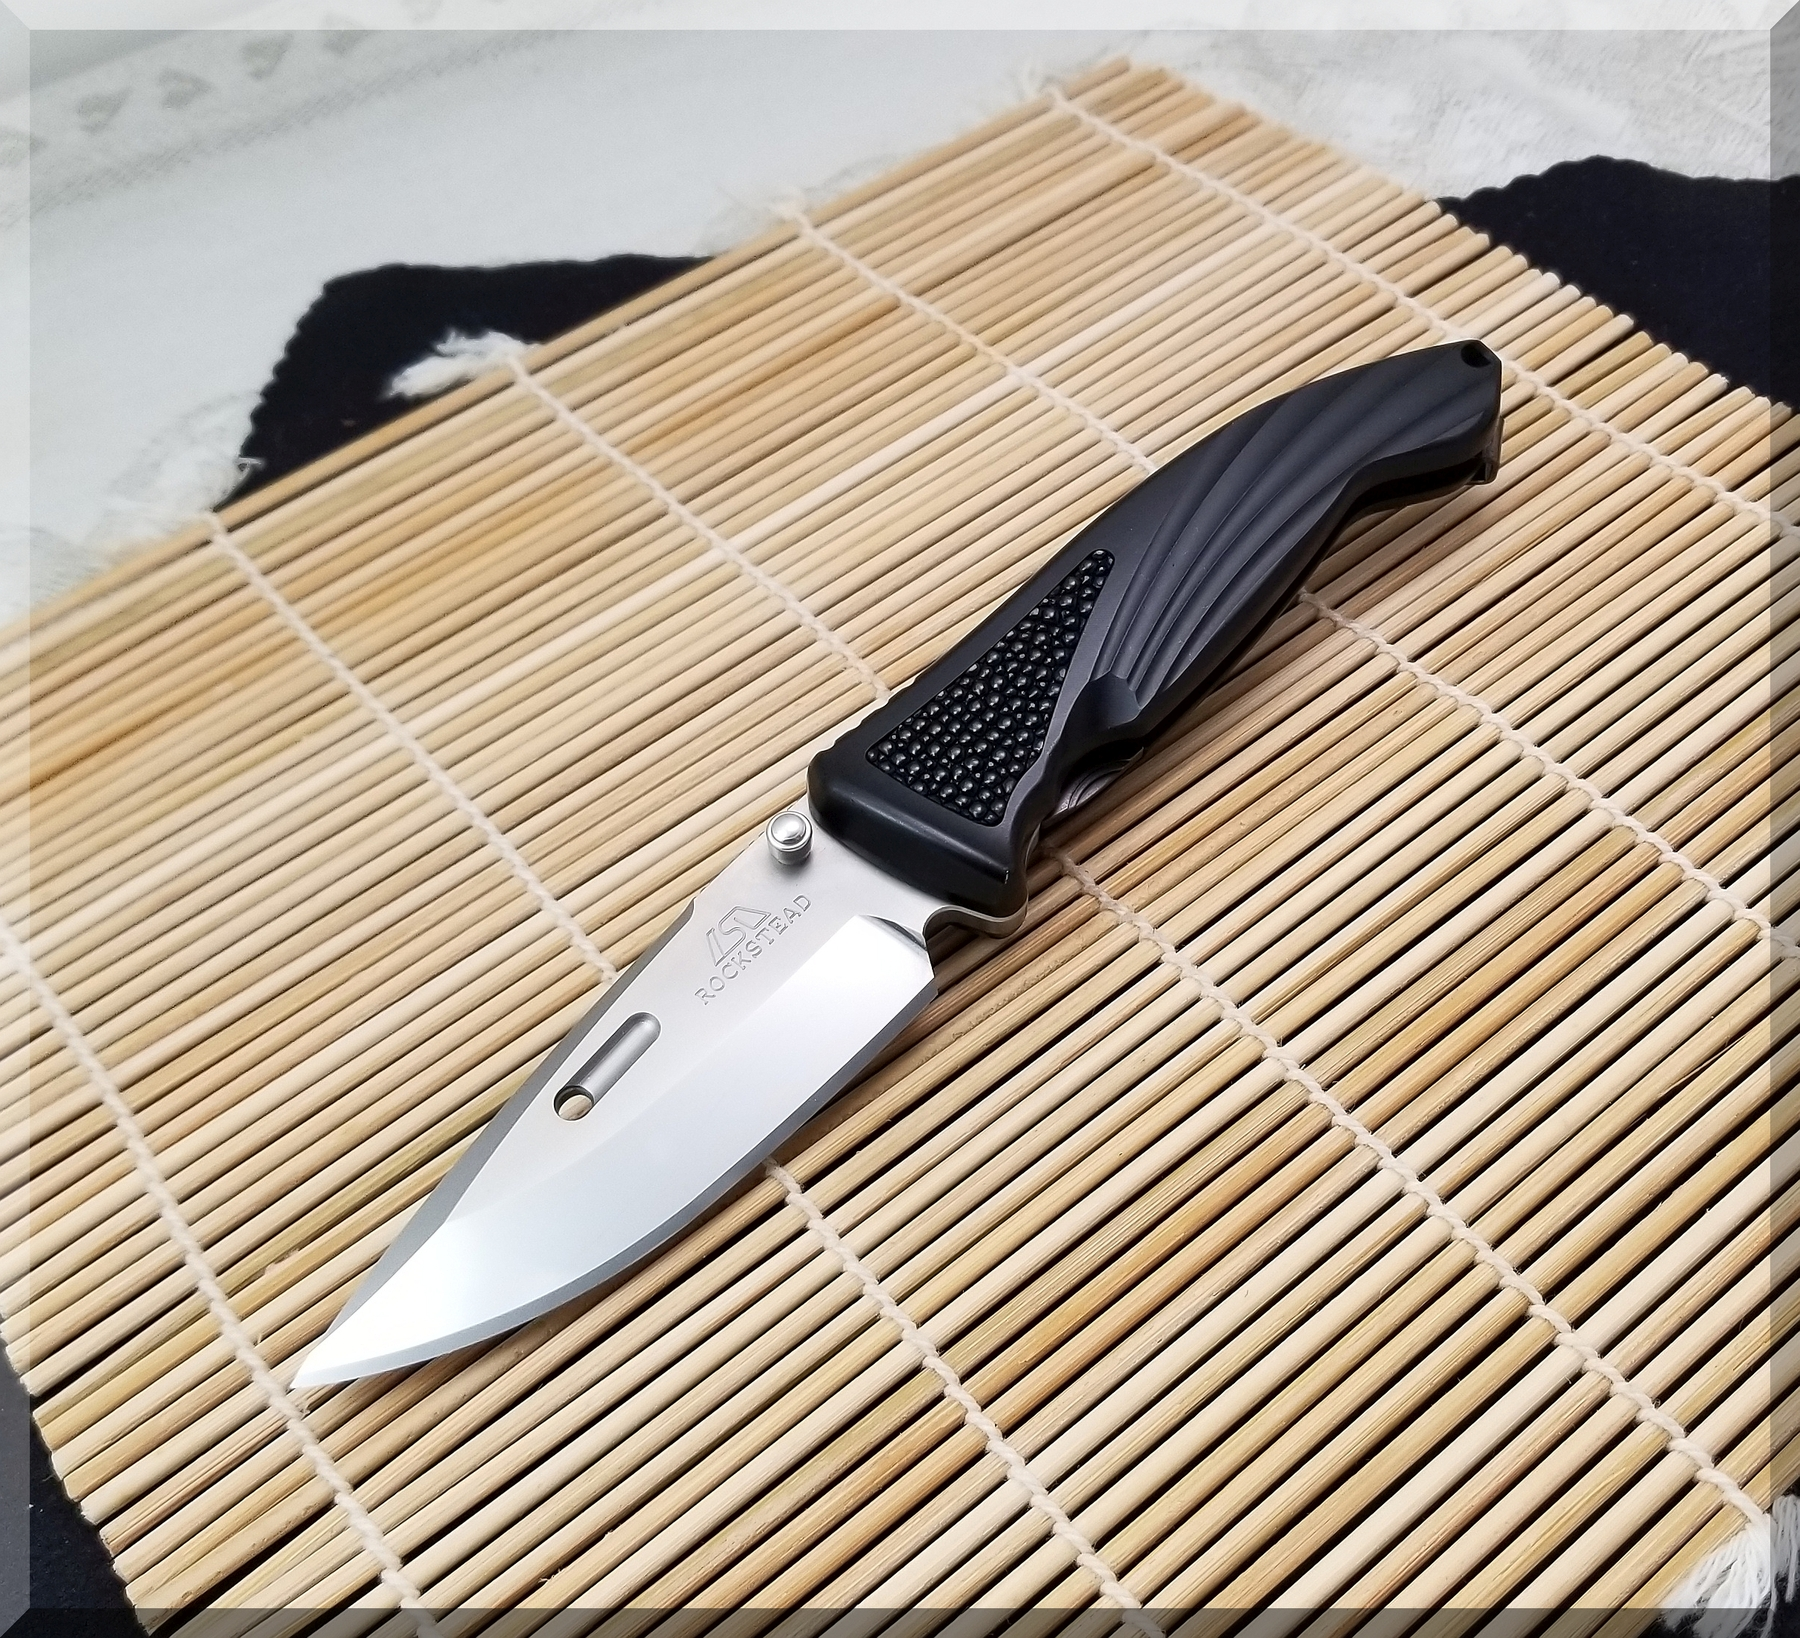 Hattori Kitchen Knives: Chefget Production Knives II